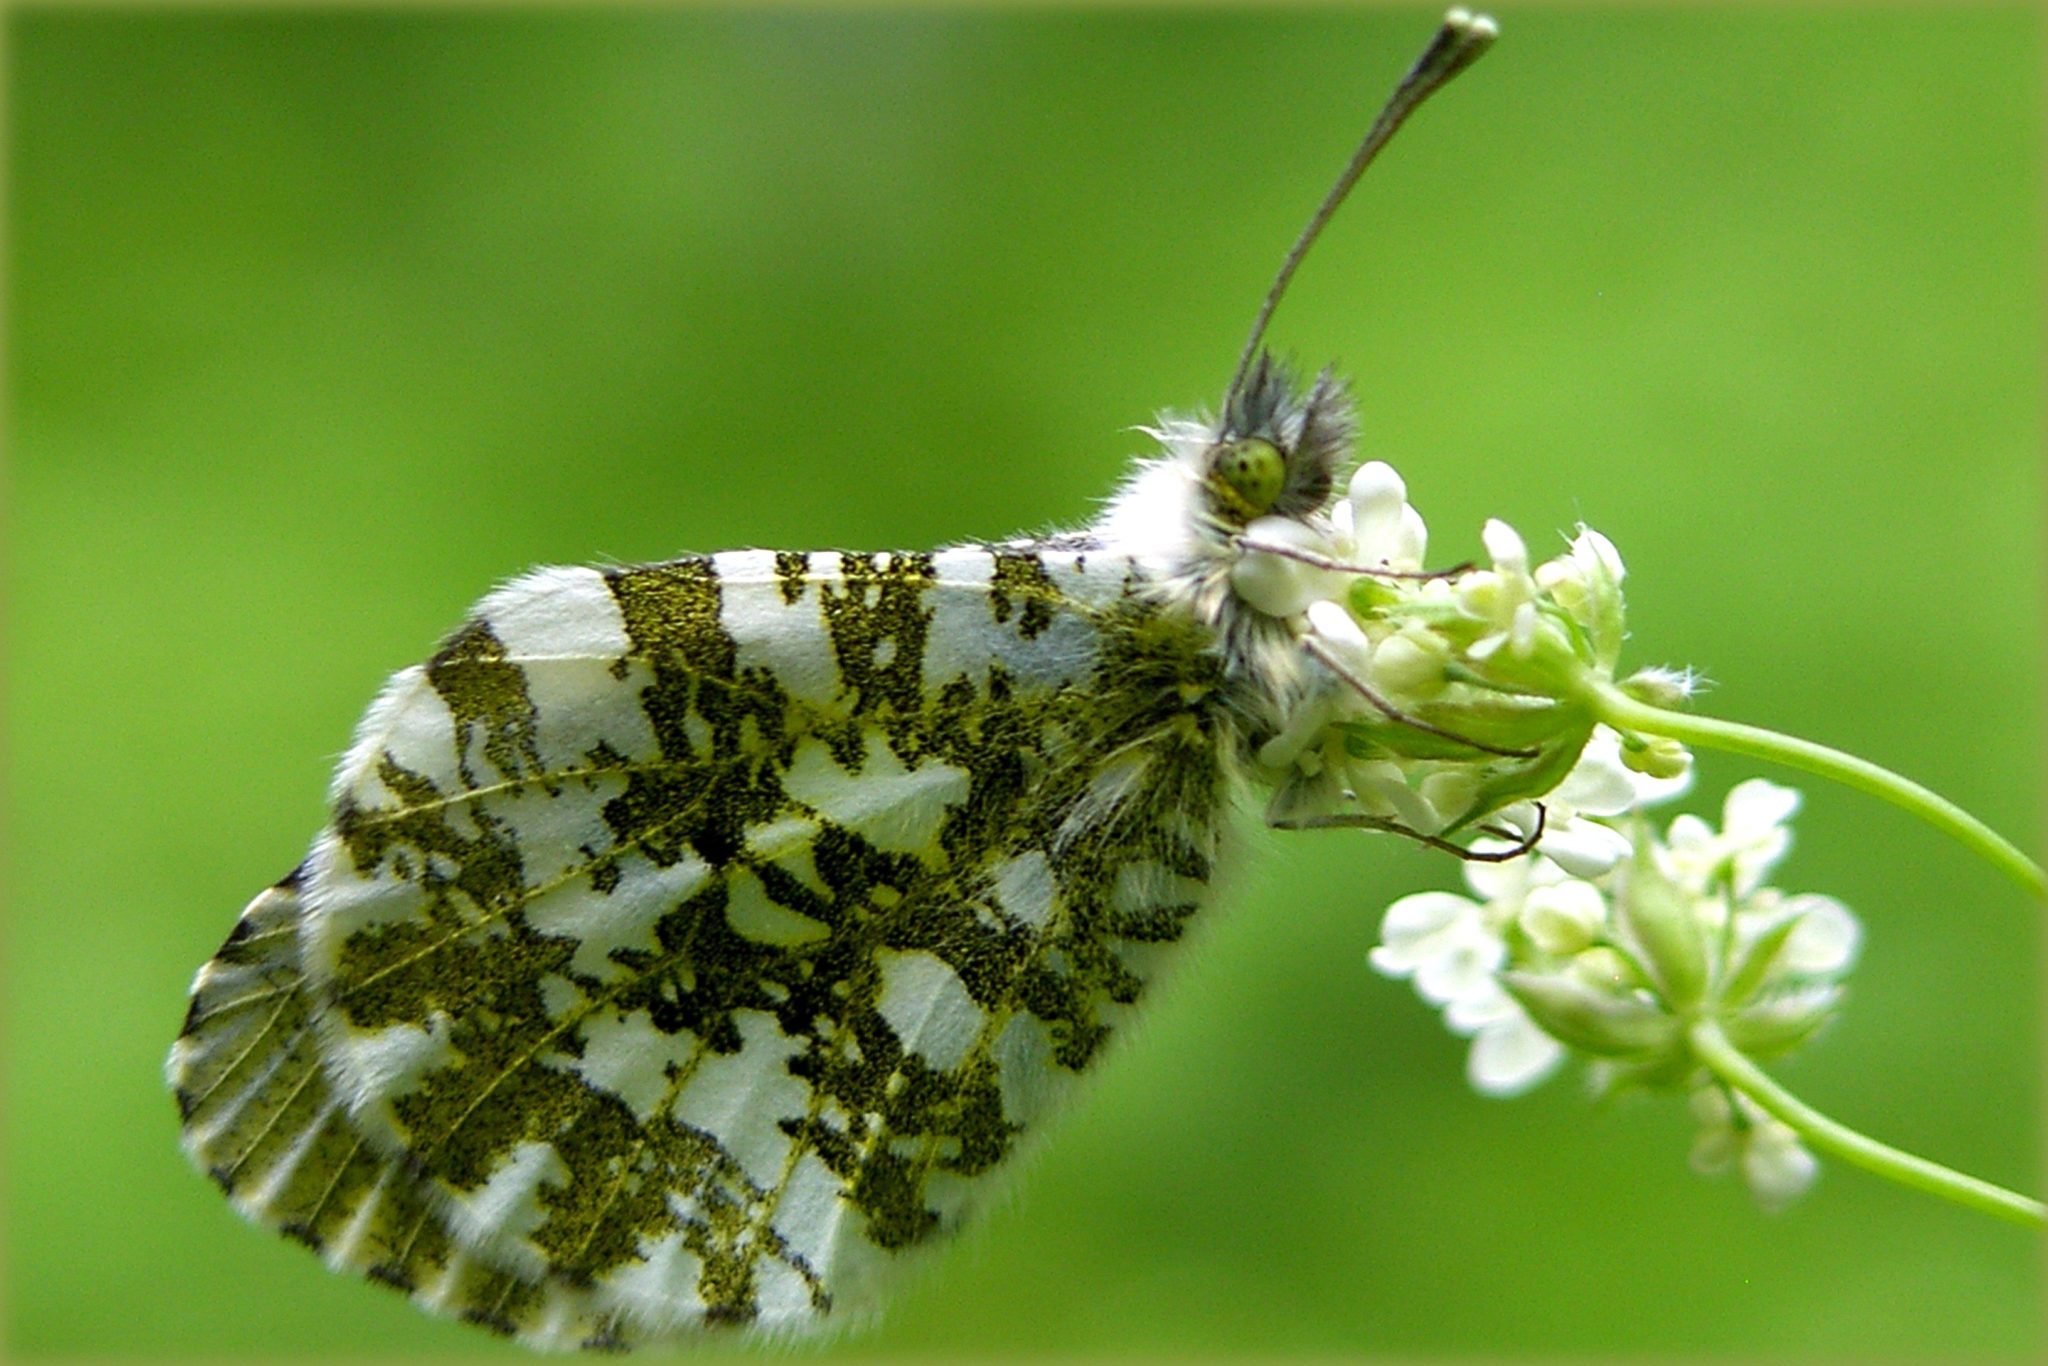 How to identify white butterflies